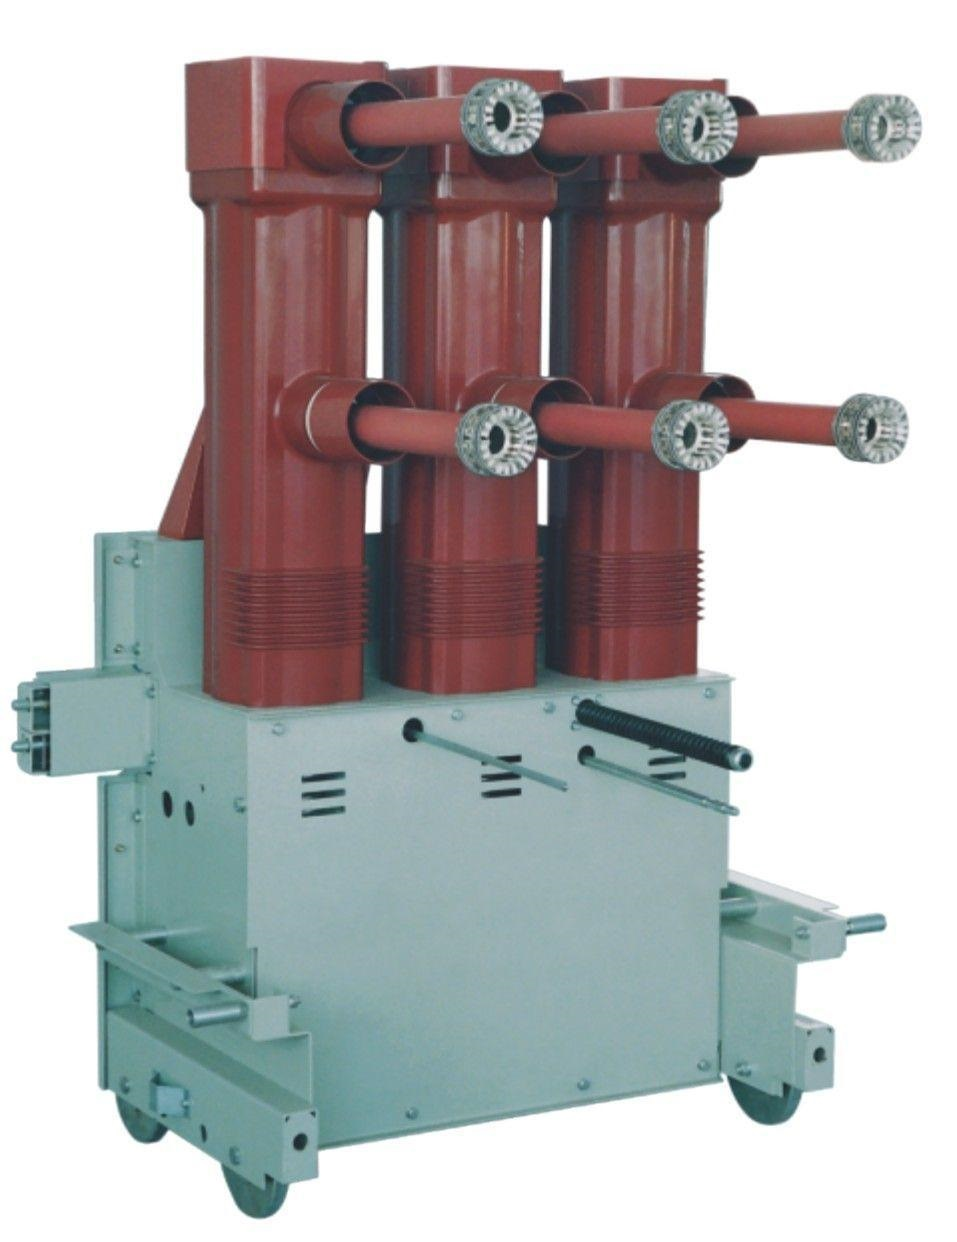 40.5KV VCB Vacuum Circuit Breaker indoor type from JUCRO Electric